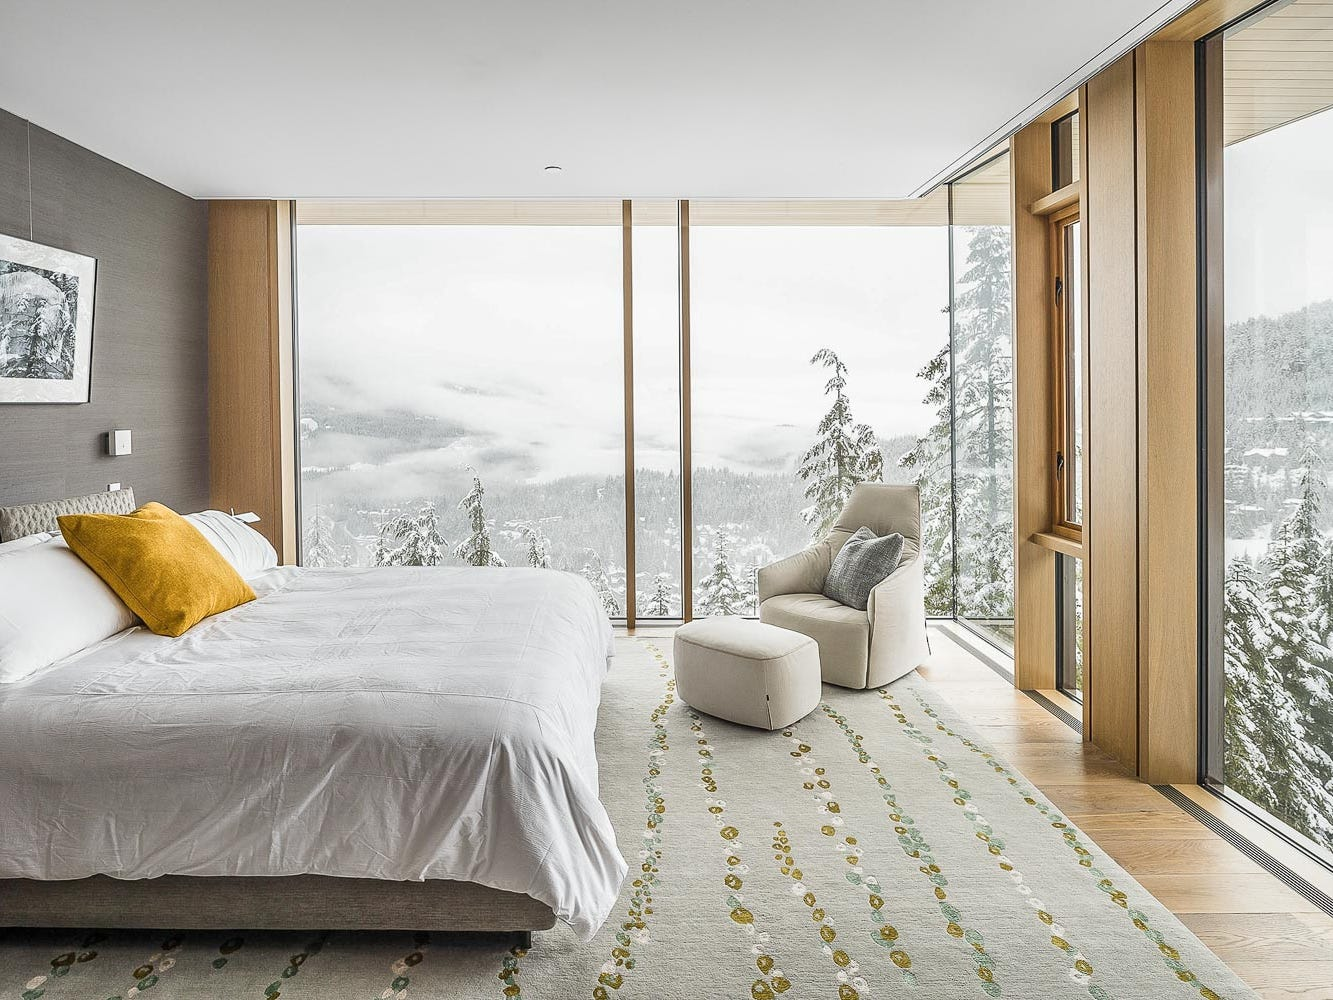 For more information: https://www.luxuryretreats.com/vacation-rentals/canada/whistler-bc/whistler/serenity-estate-123031